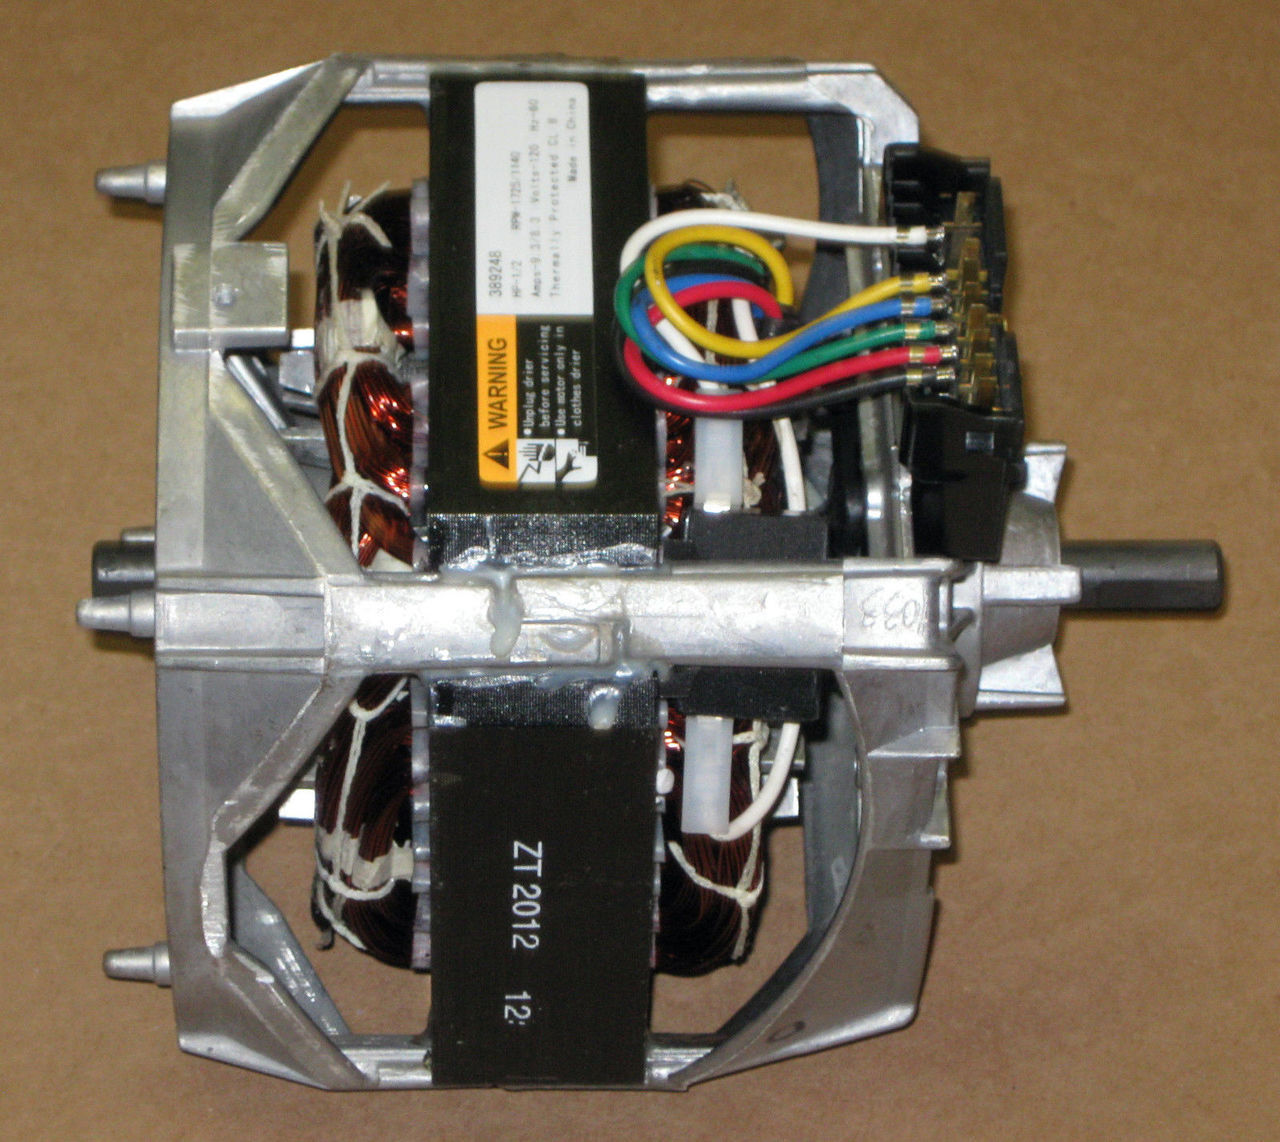 hight resolution of washing machine motor for whirlpool mccombs supply co 389248a 389248